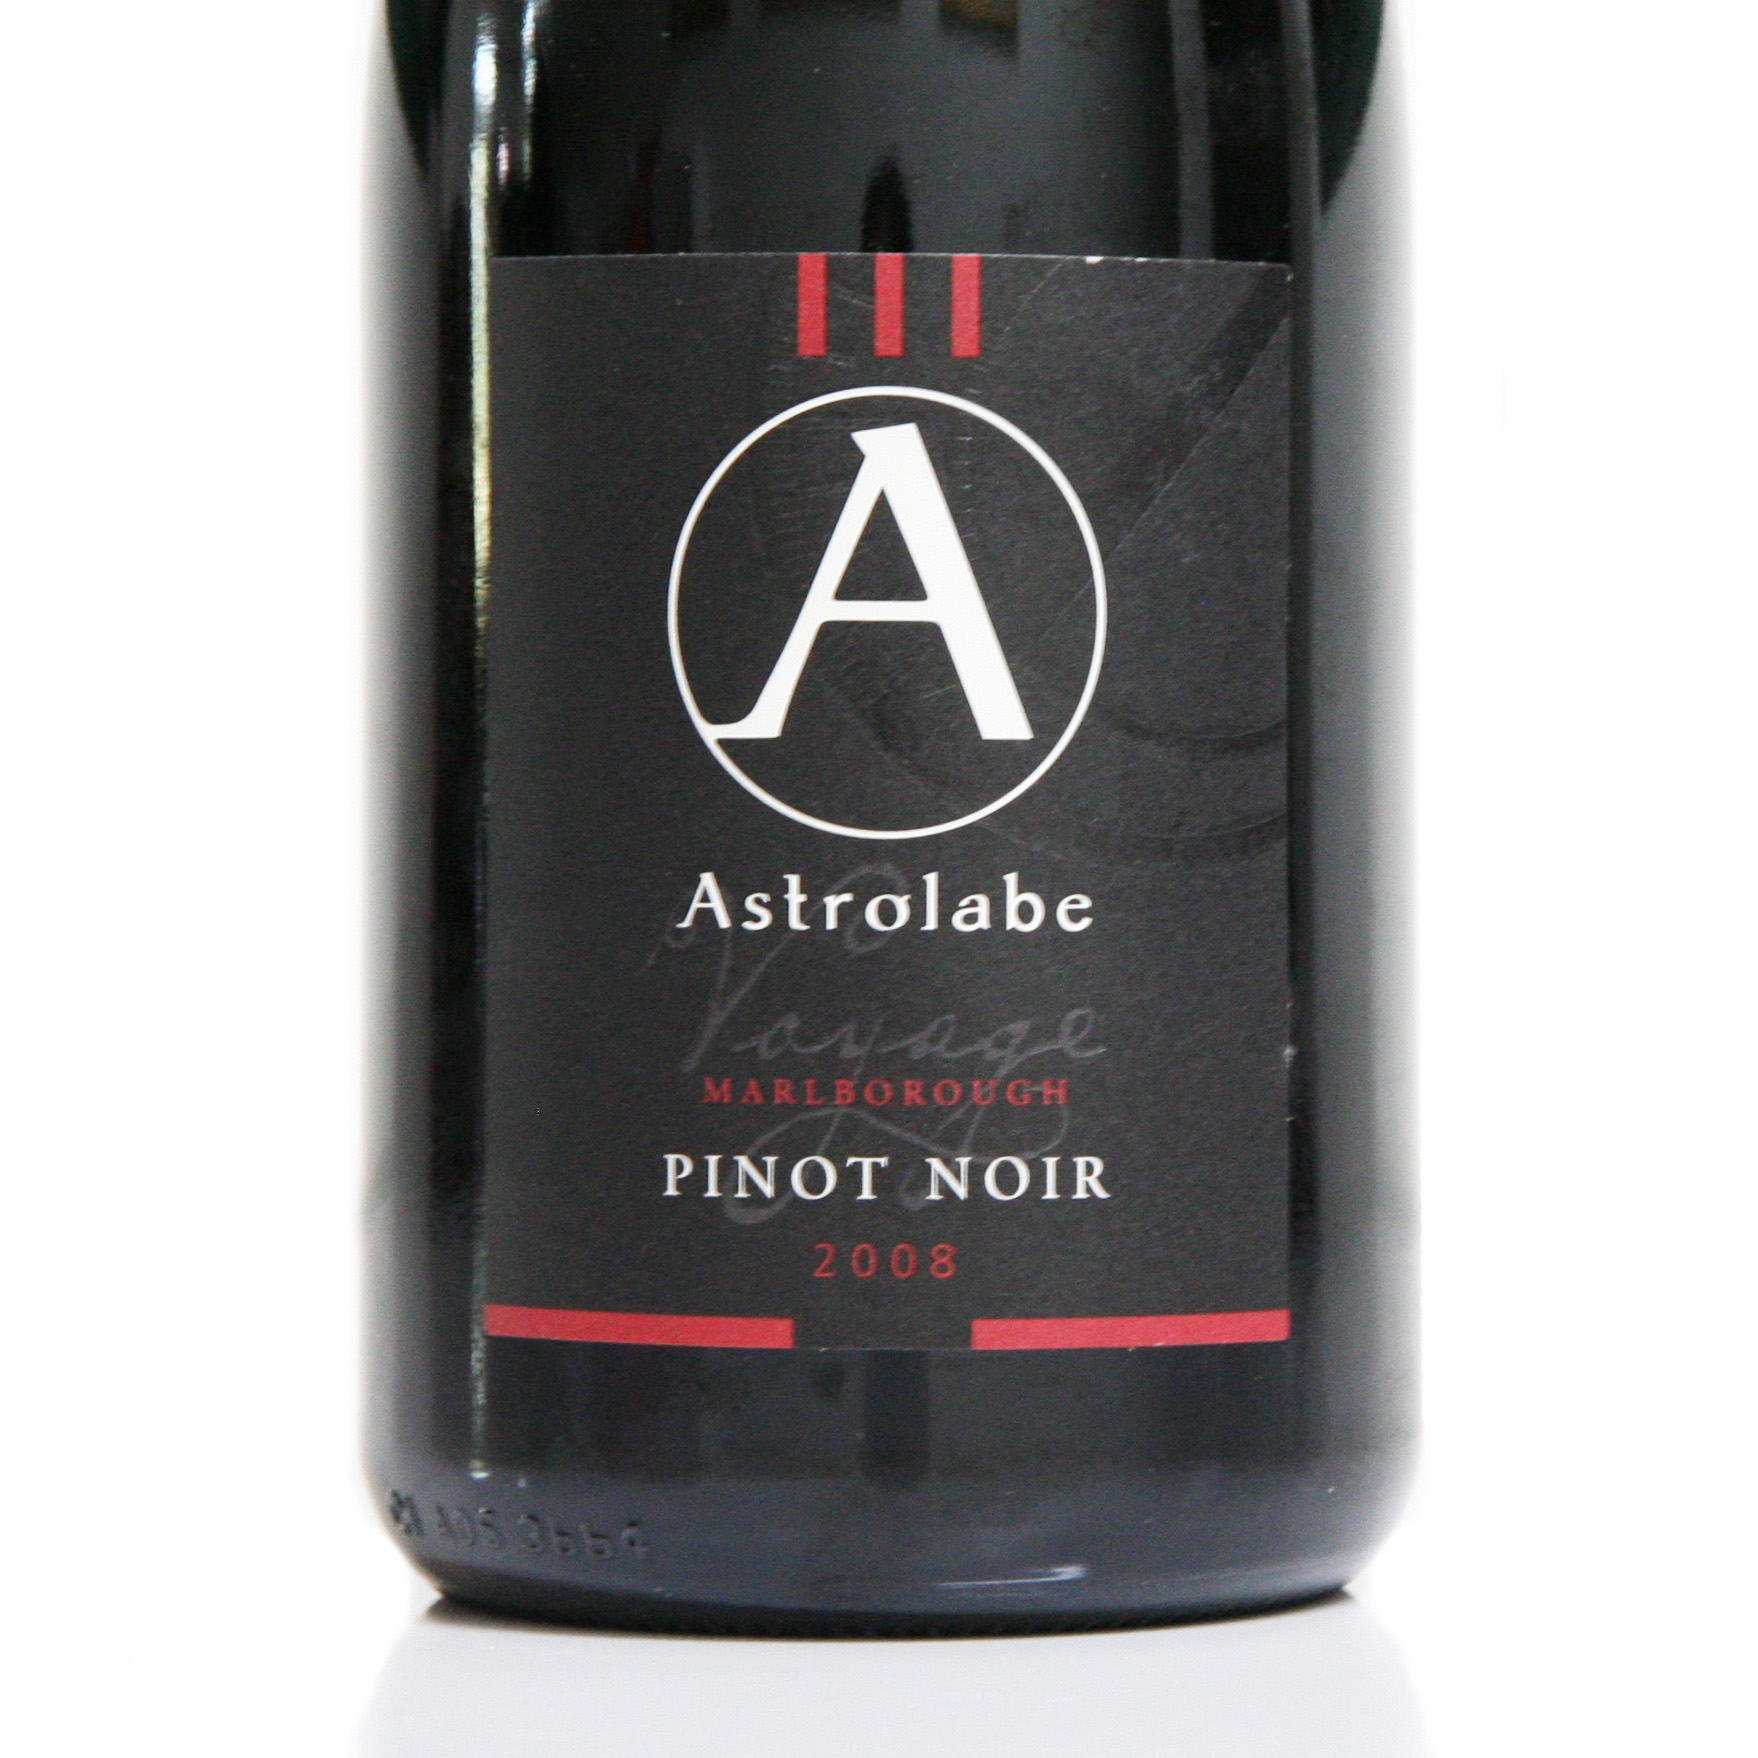 Astrolabe Pinot Noir bottle